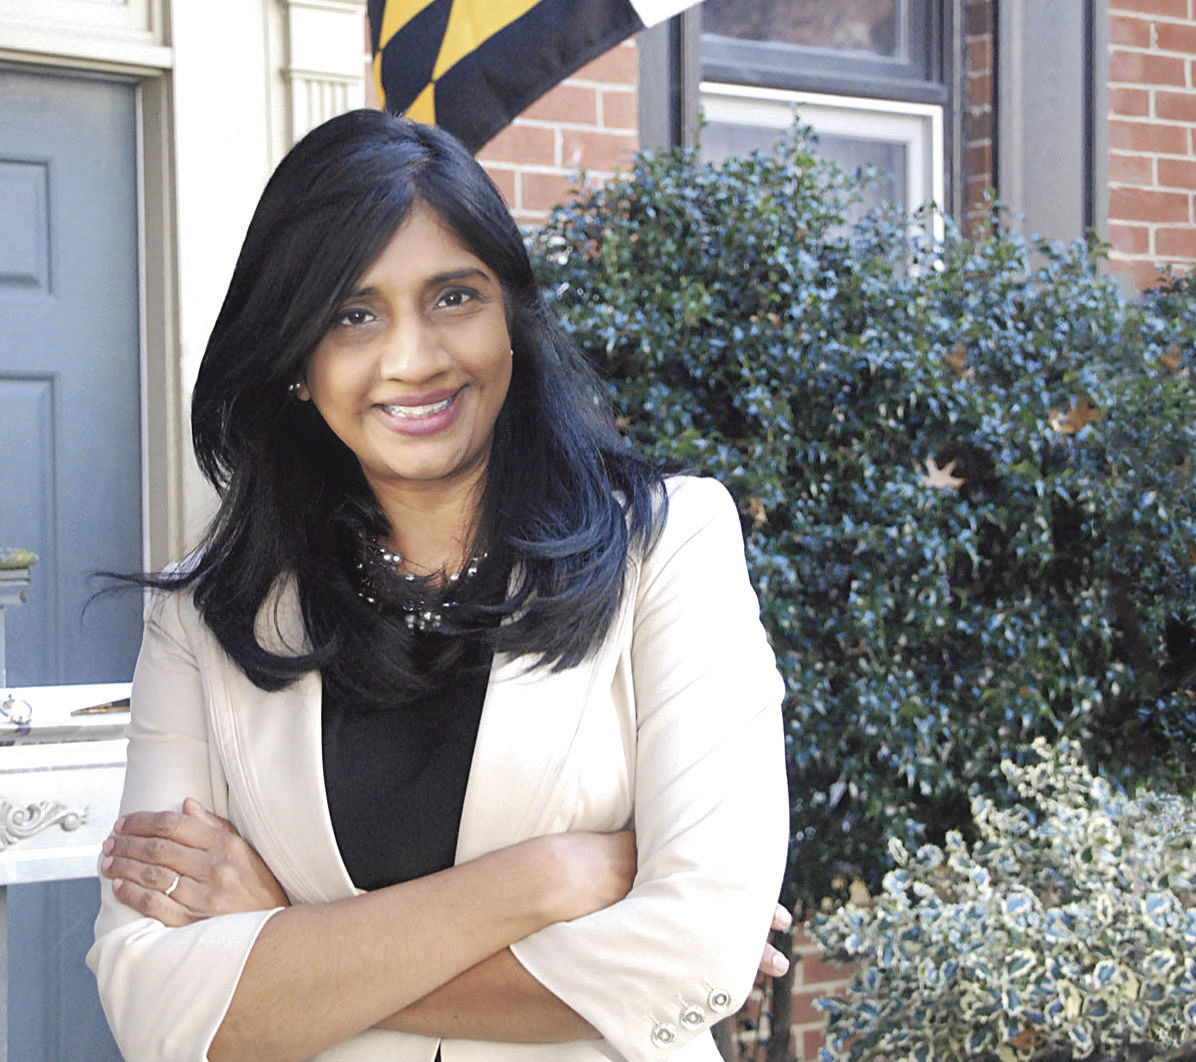 aruna miller talks about her role in maryland's house of delegates